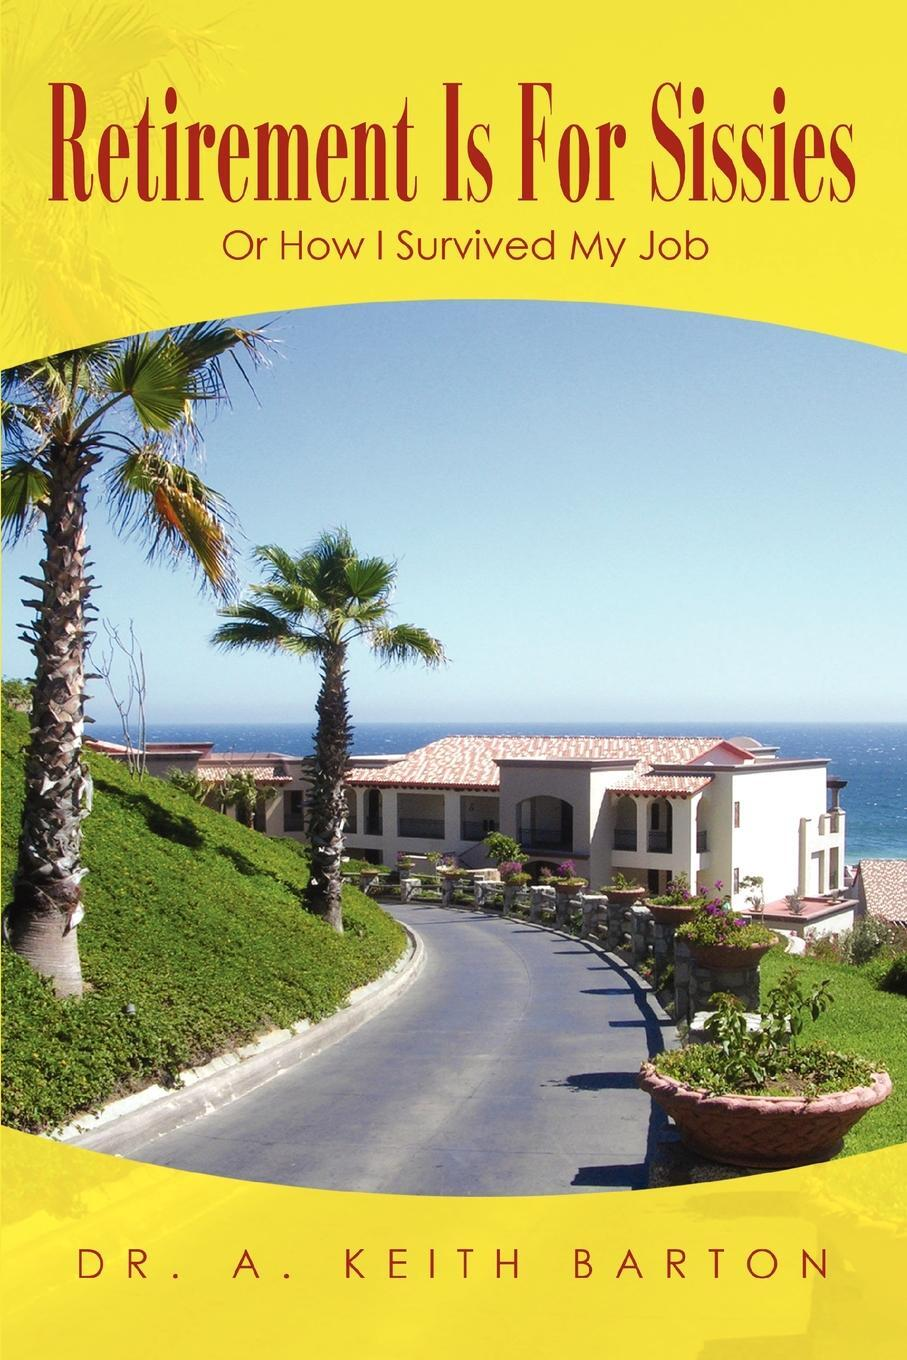 Retirement Is For Sissies. Or How I Survived My Job